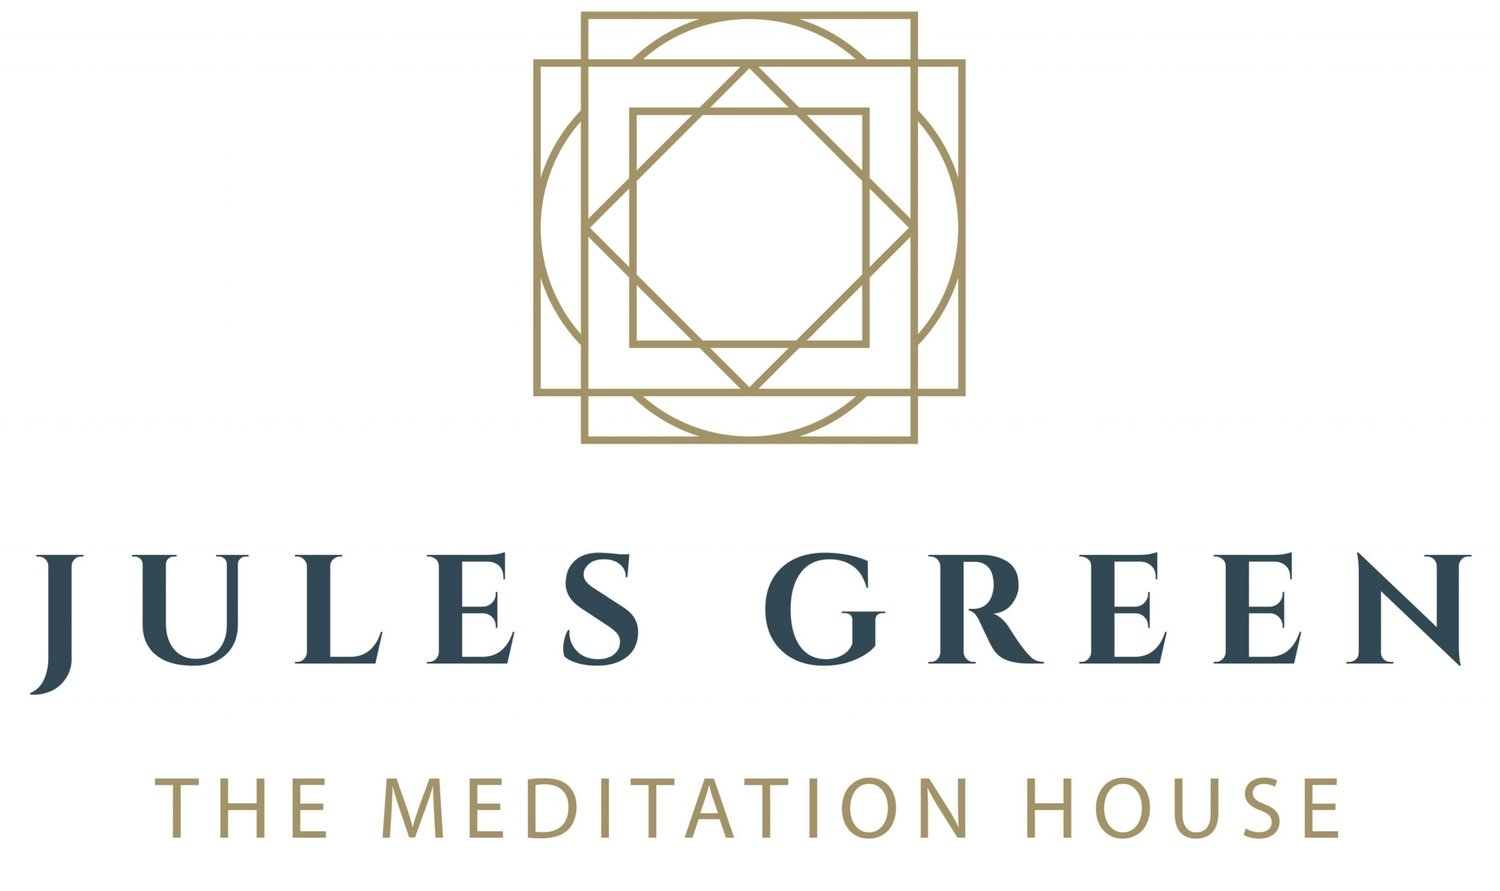 Jules Green, LLC